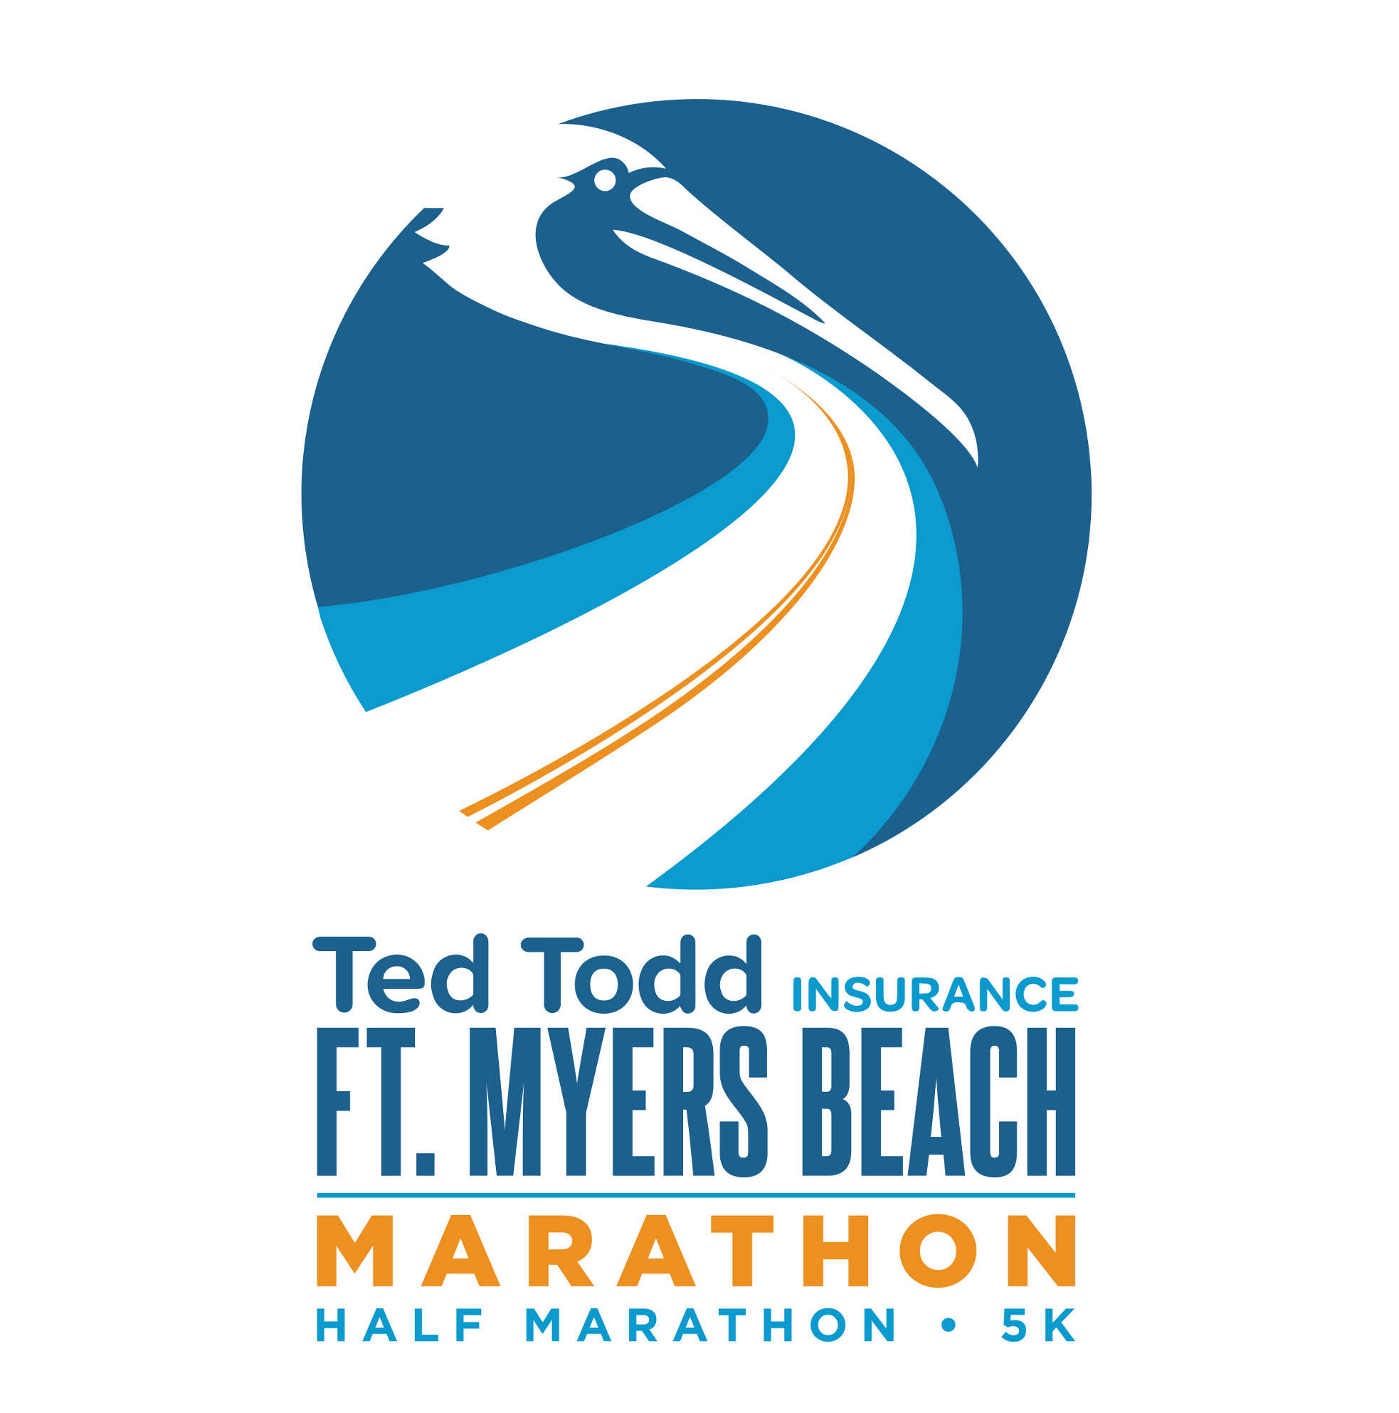 Ted Todd Insurance Fort Myers Beach Marathon event logo